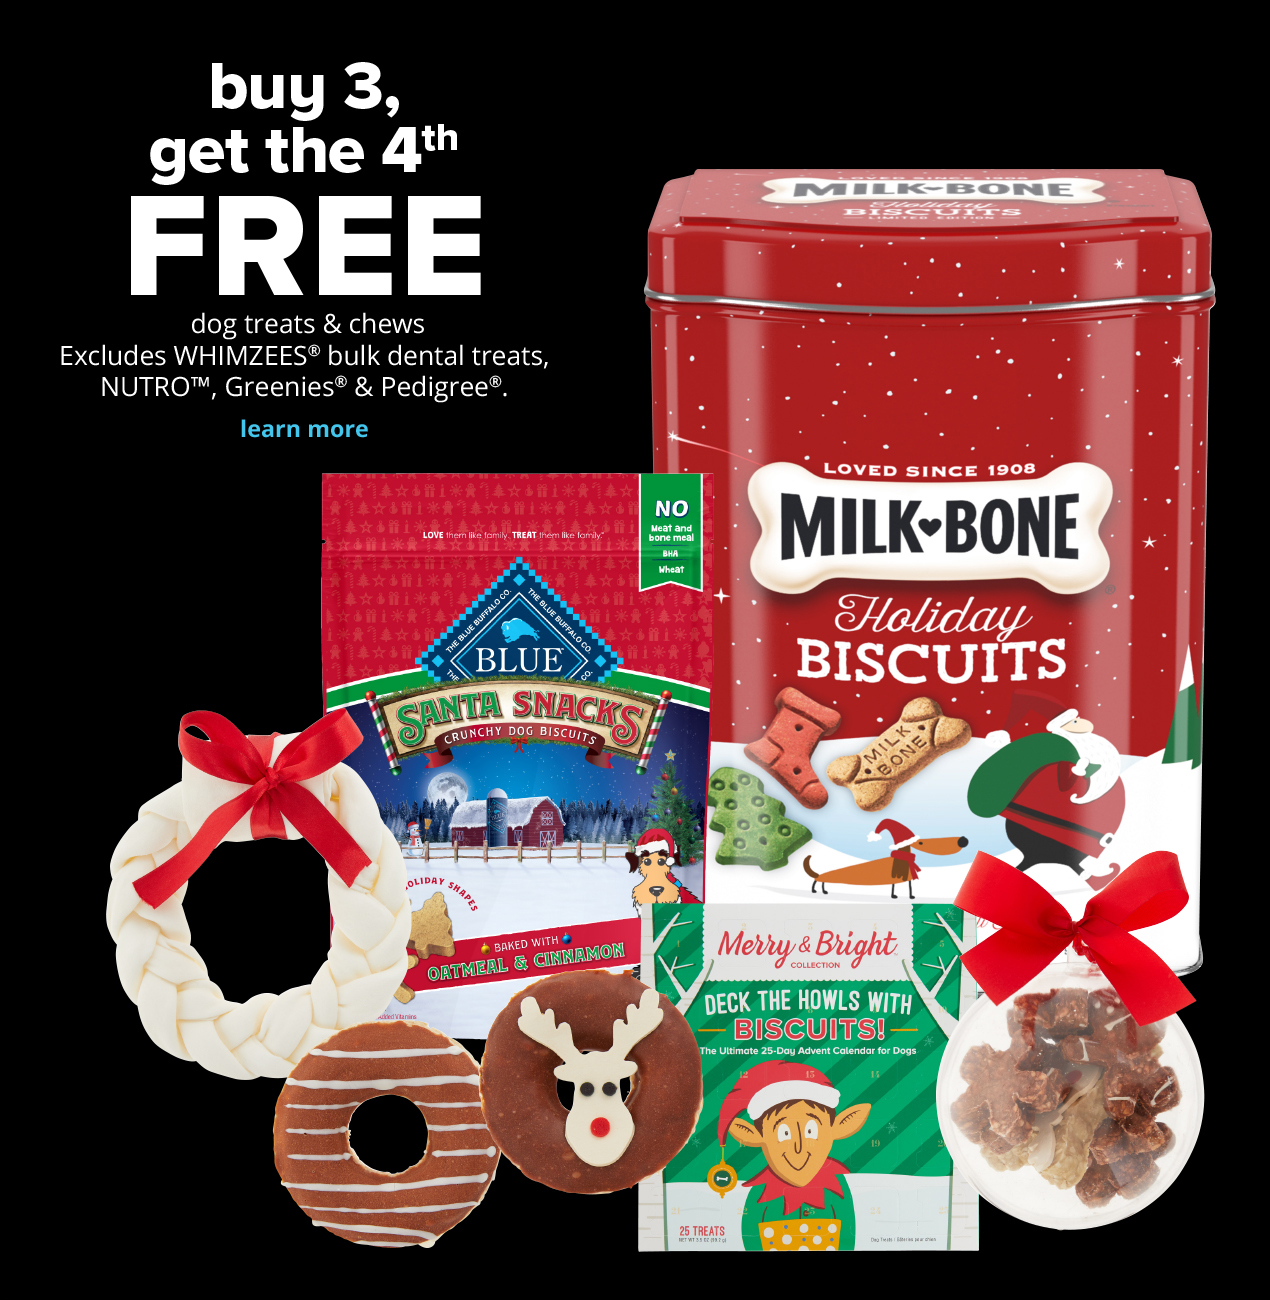 buy 3, get the 4th FREE dog treats & chews Excludes  WHIMZEES® bulk dental treats, NUTRO™, Greenies® & Pedigree®